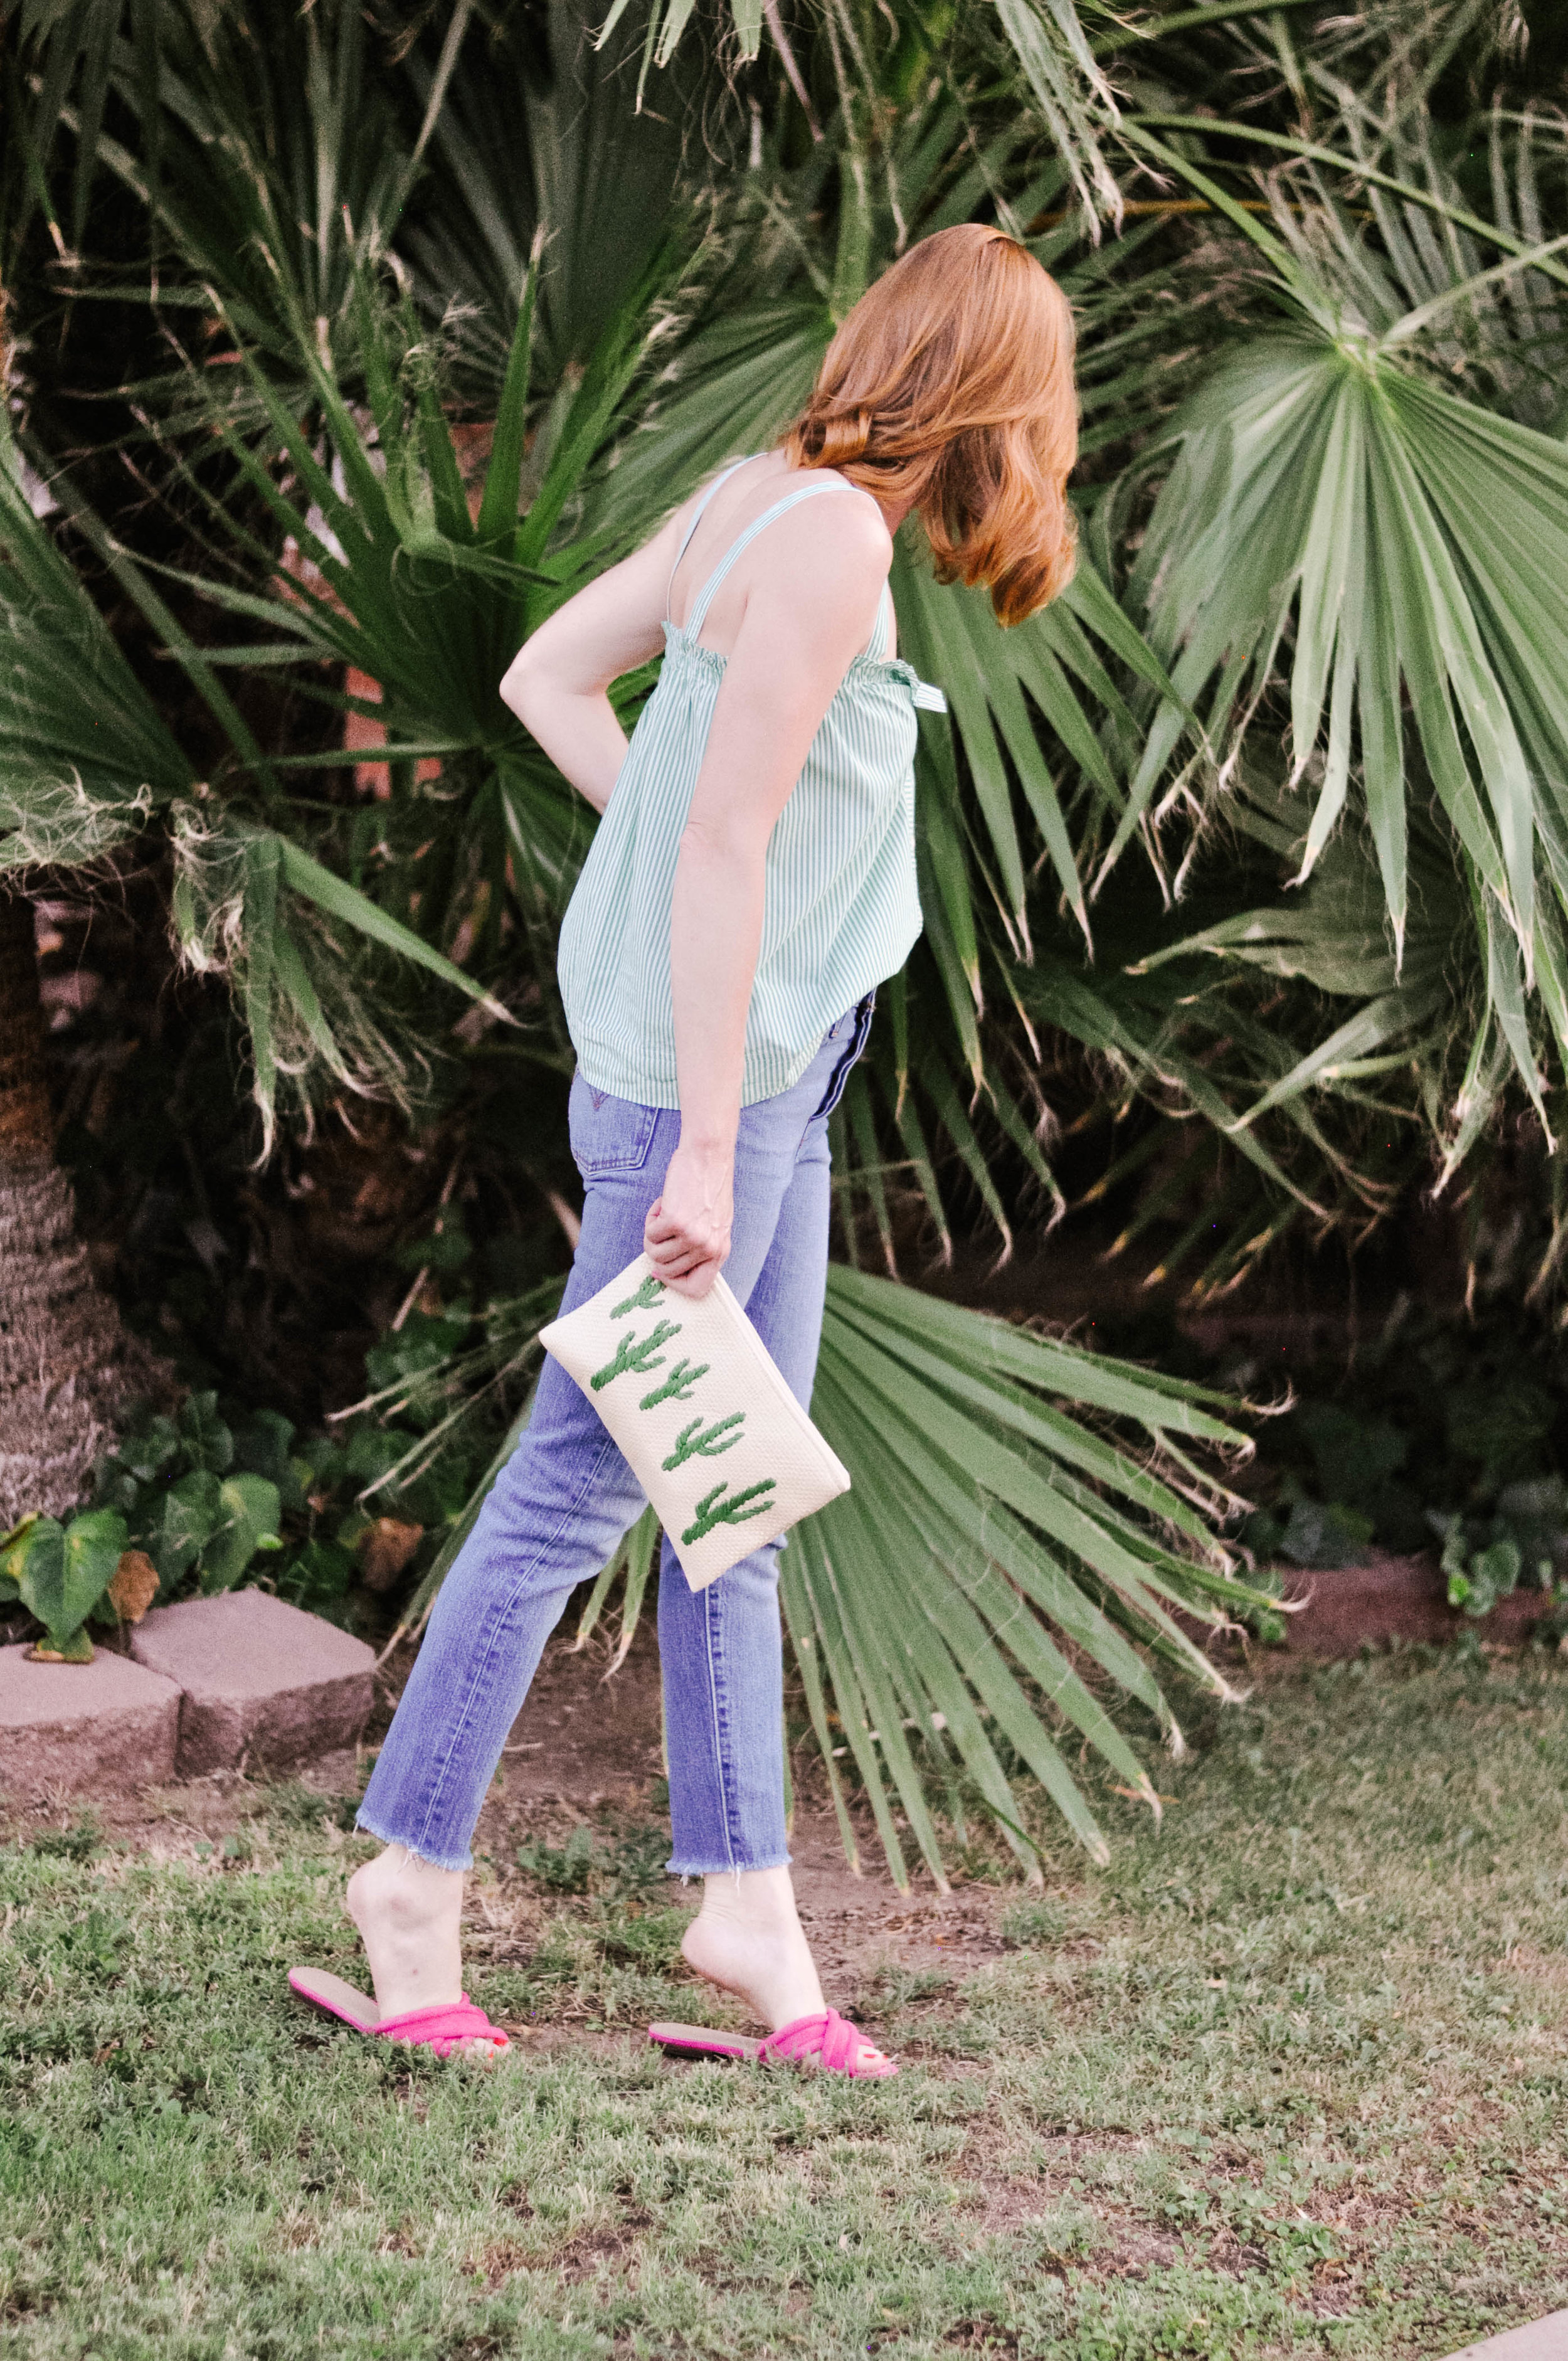 Woman Standing in Front of Palm Tree in a Casual Summer Outfit